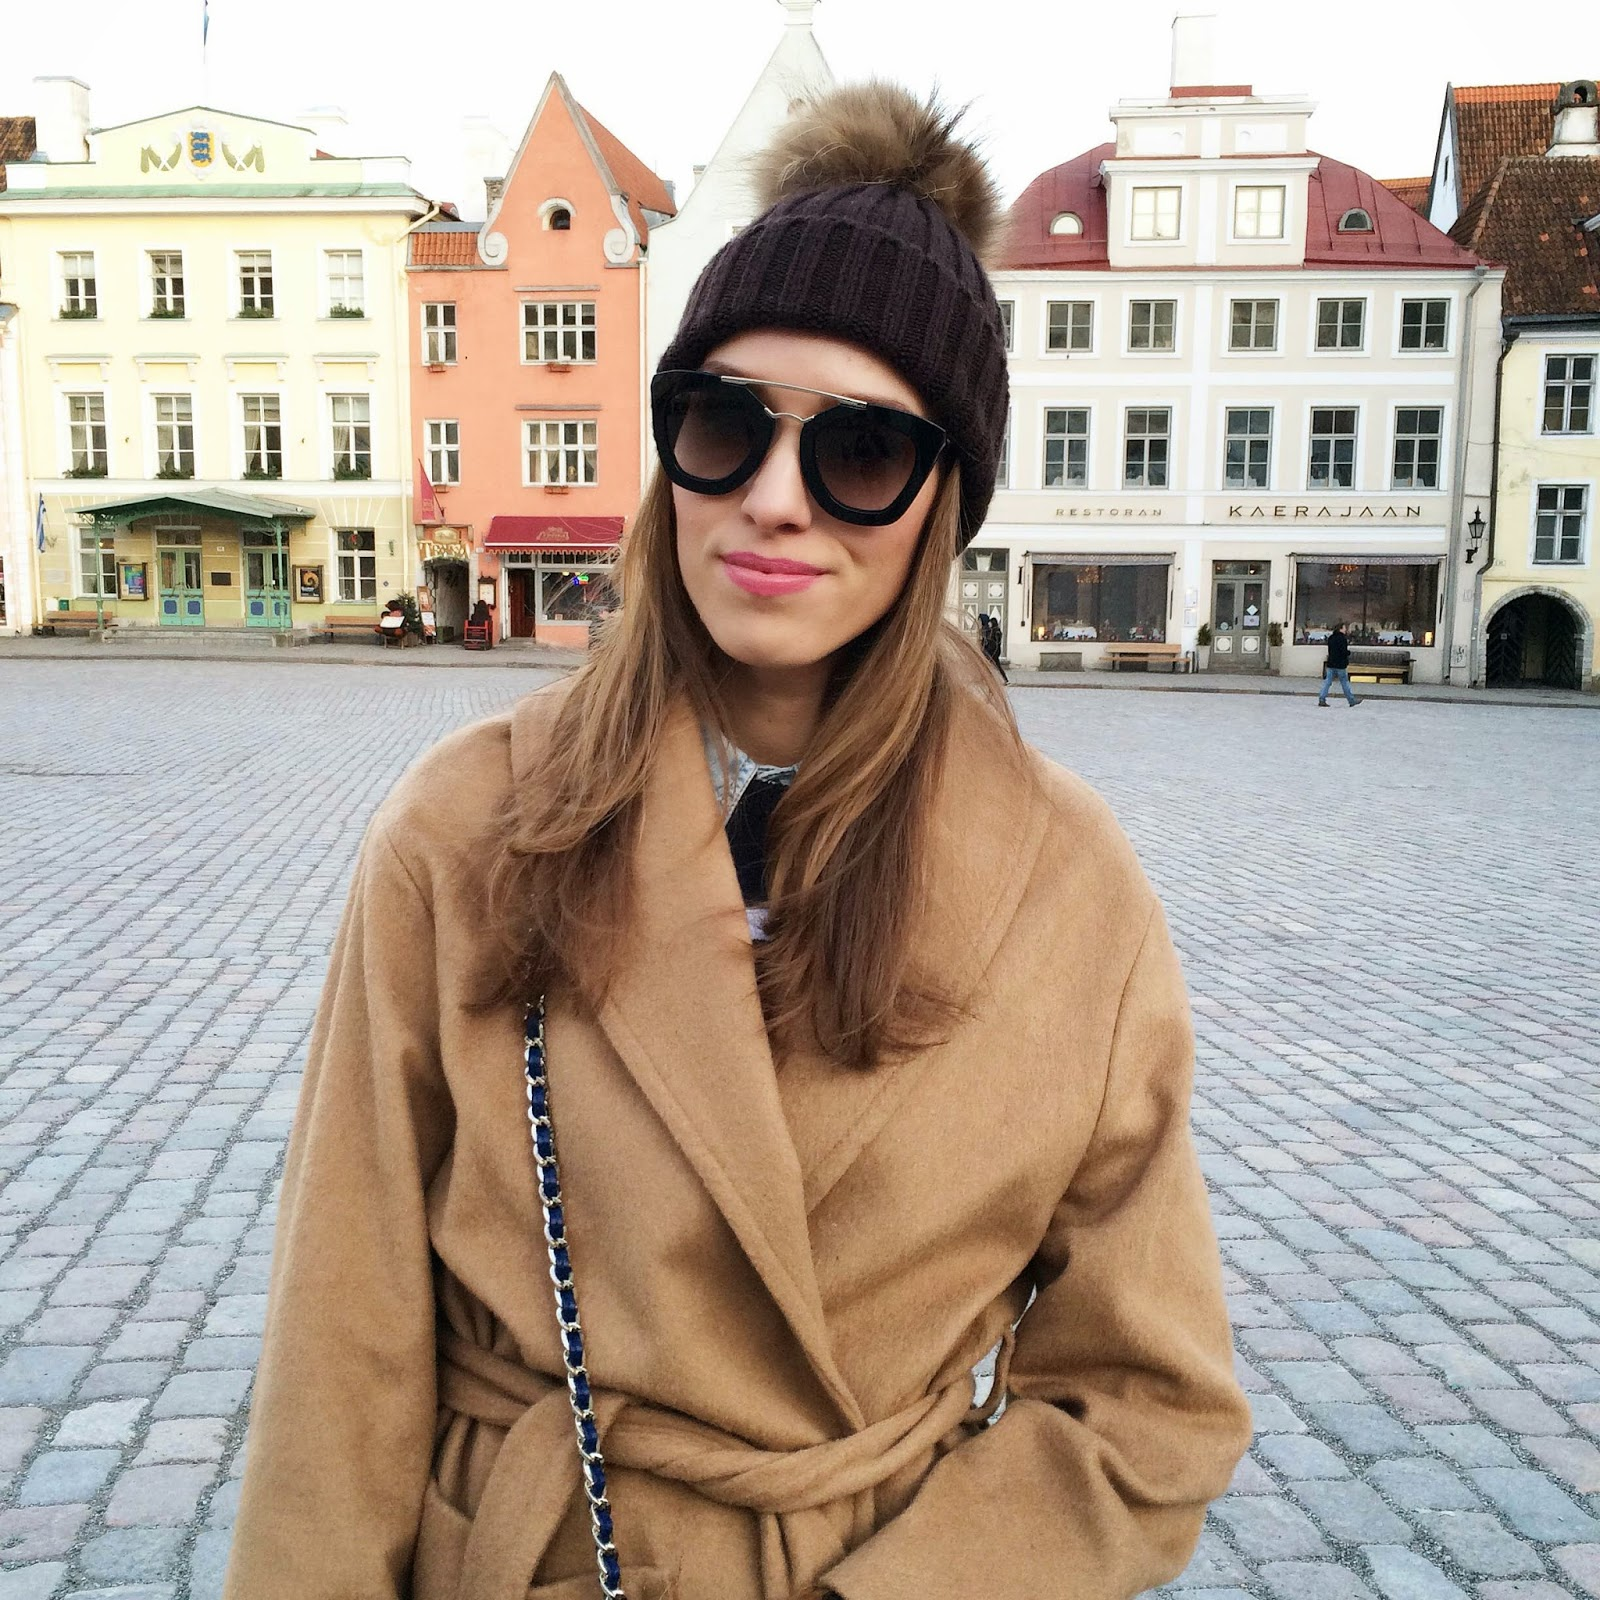 fur-pom-pom-bobble-hat-prada-cinema-sunglasses-mango-camel-coat